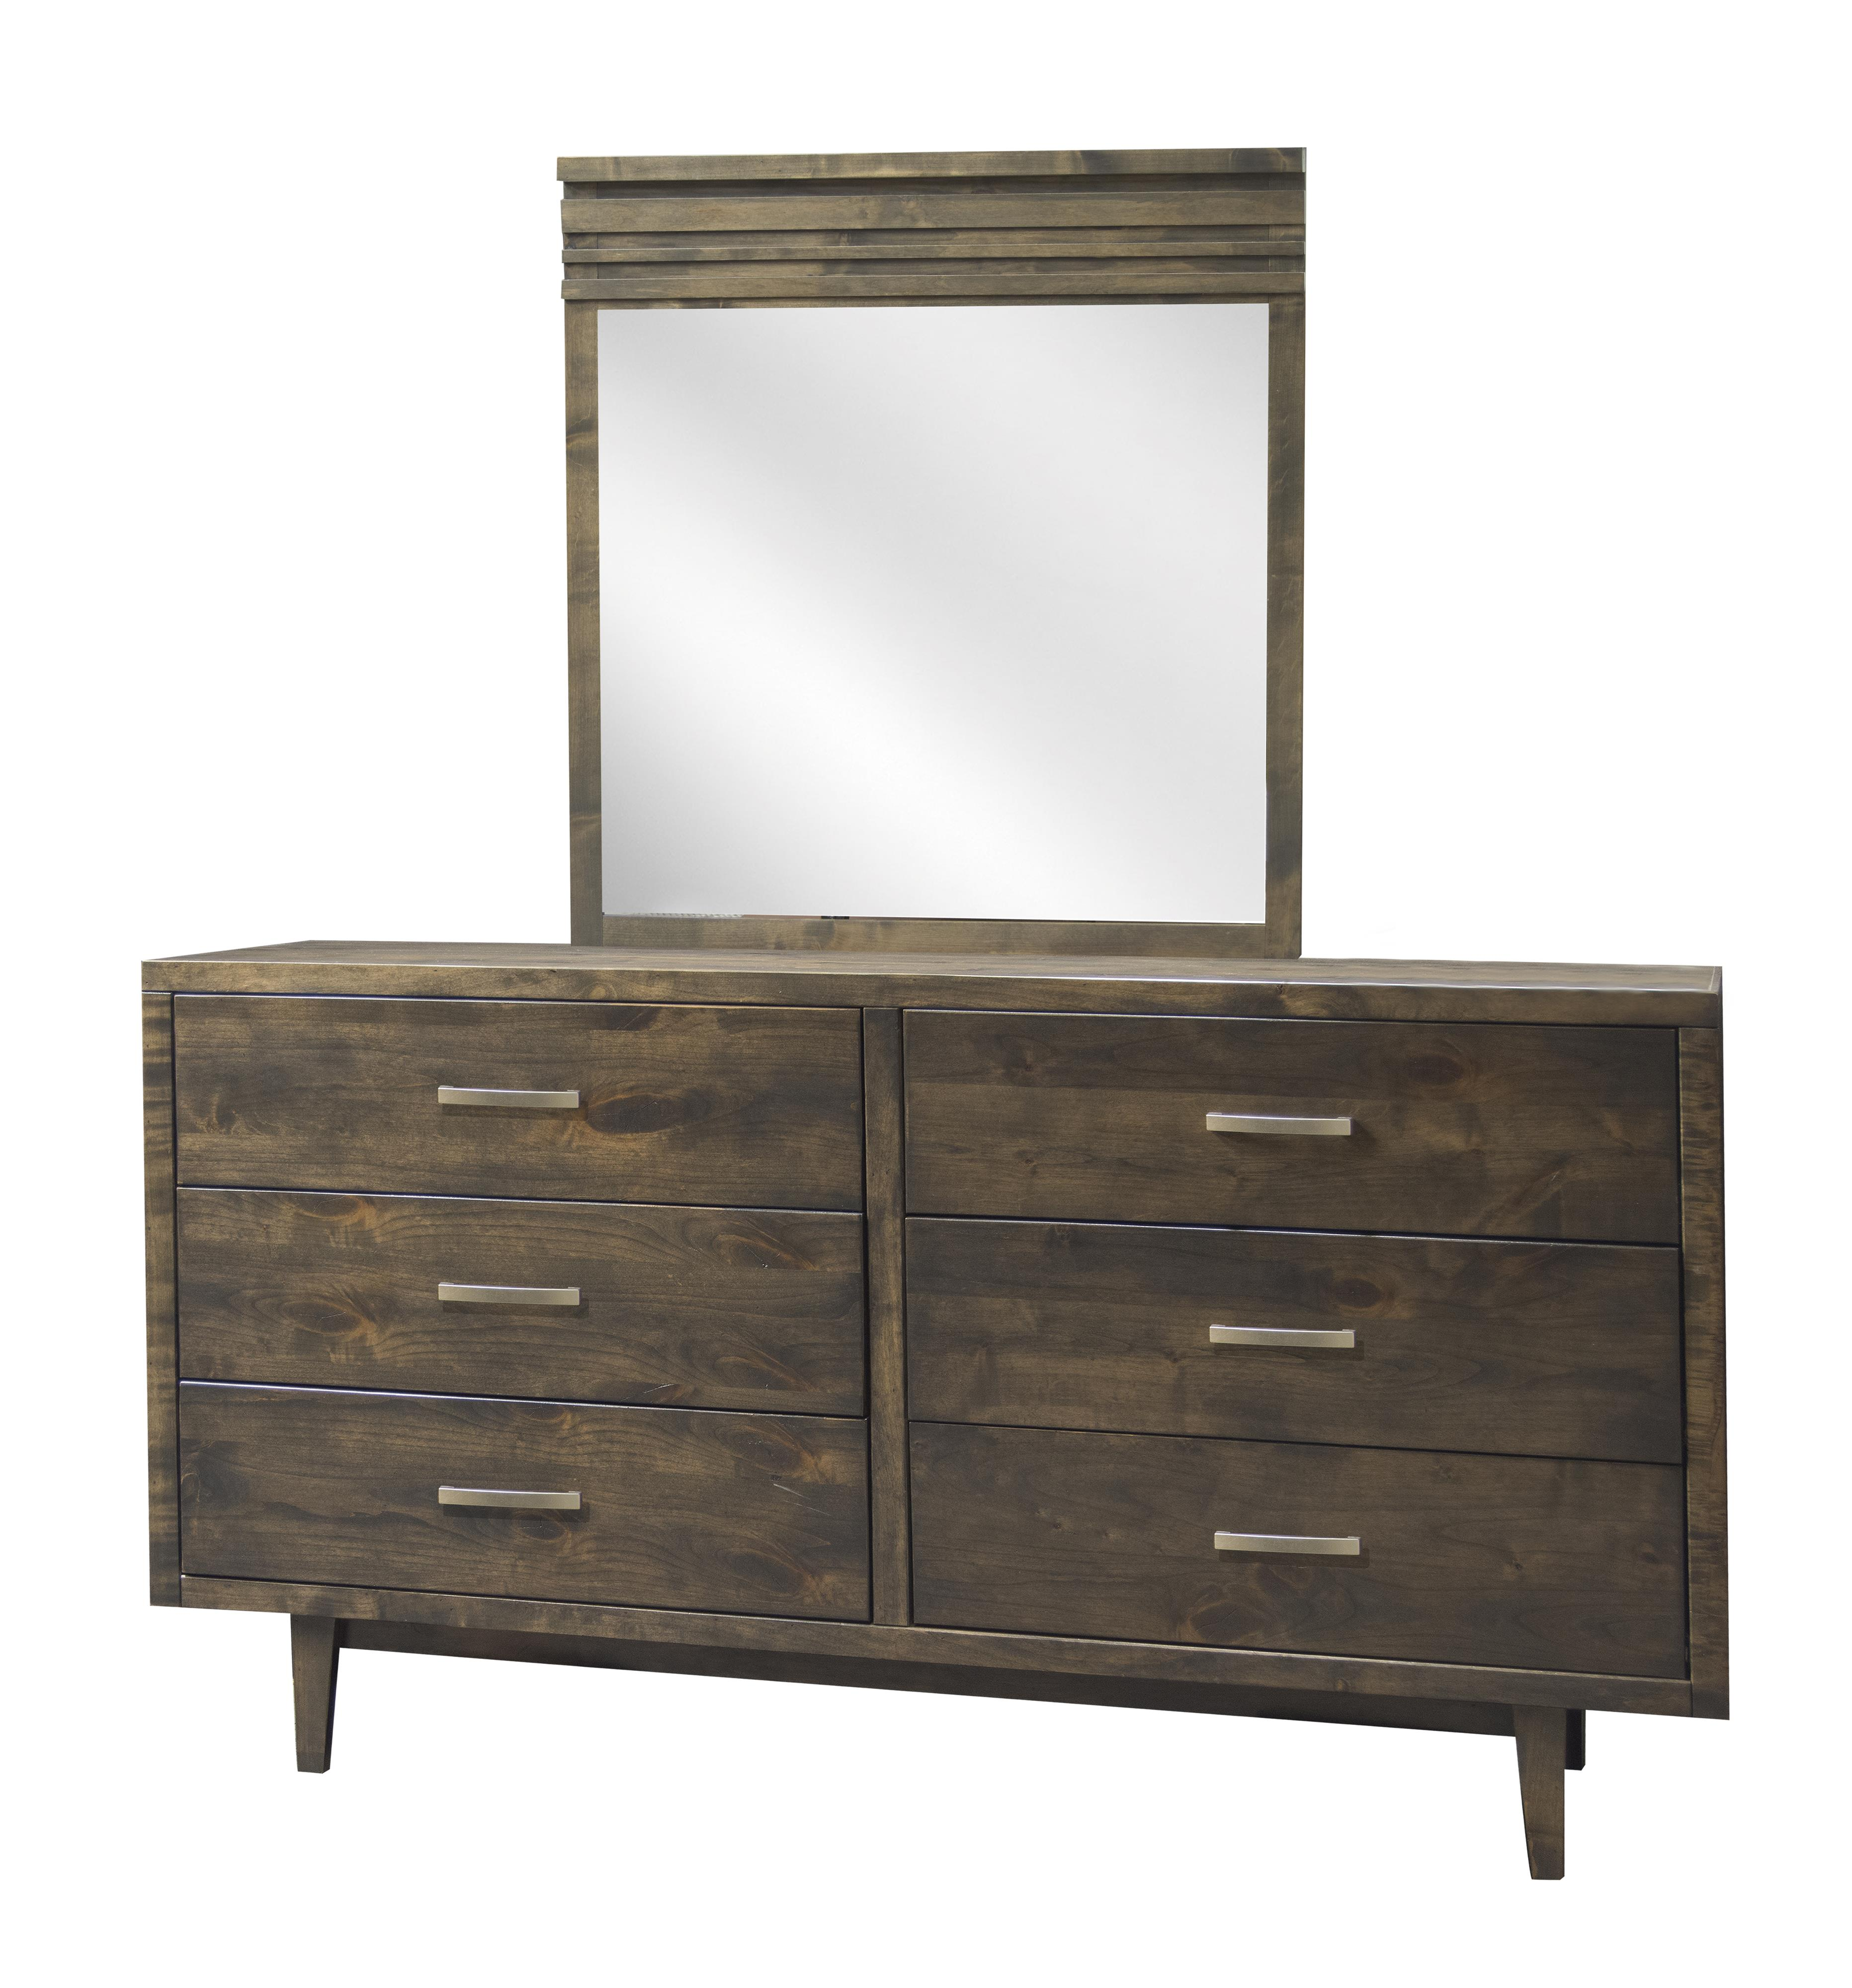 Legends Furniture Avondale 6 Drawer Dresser & Mirror - Item Number: AV7103-CHR+AV7104-CHR